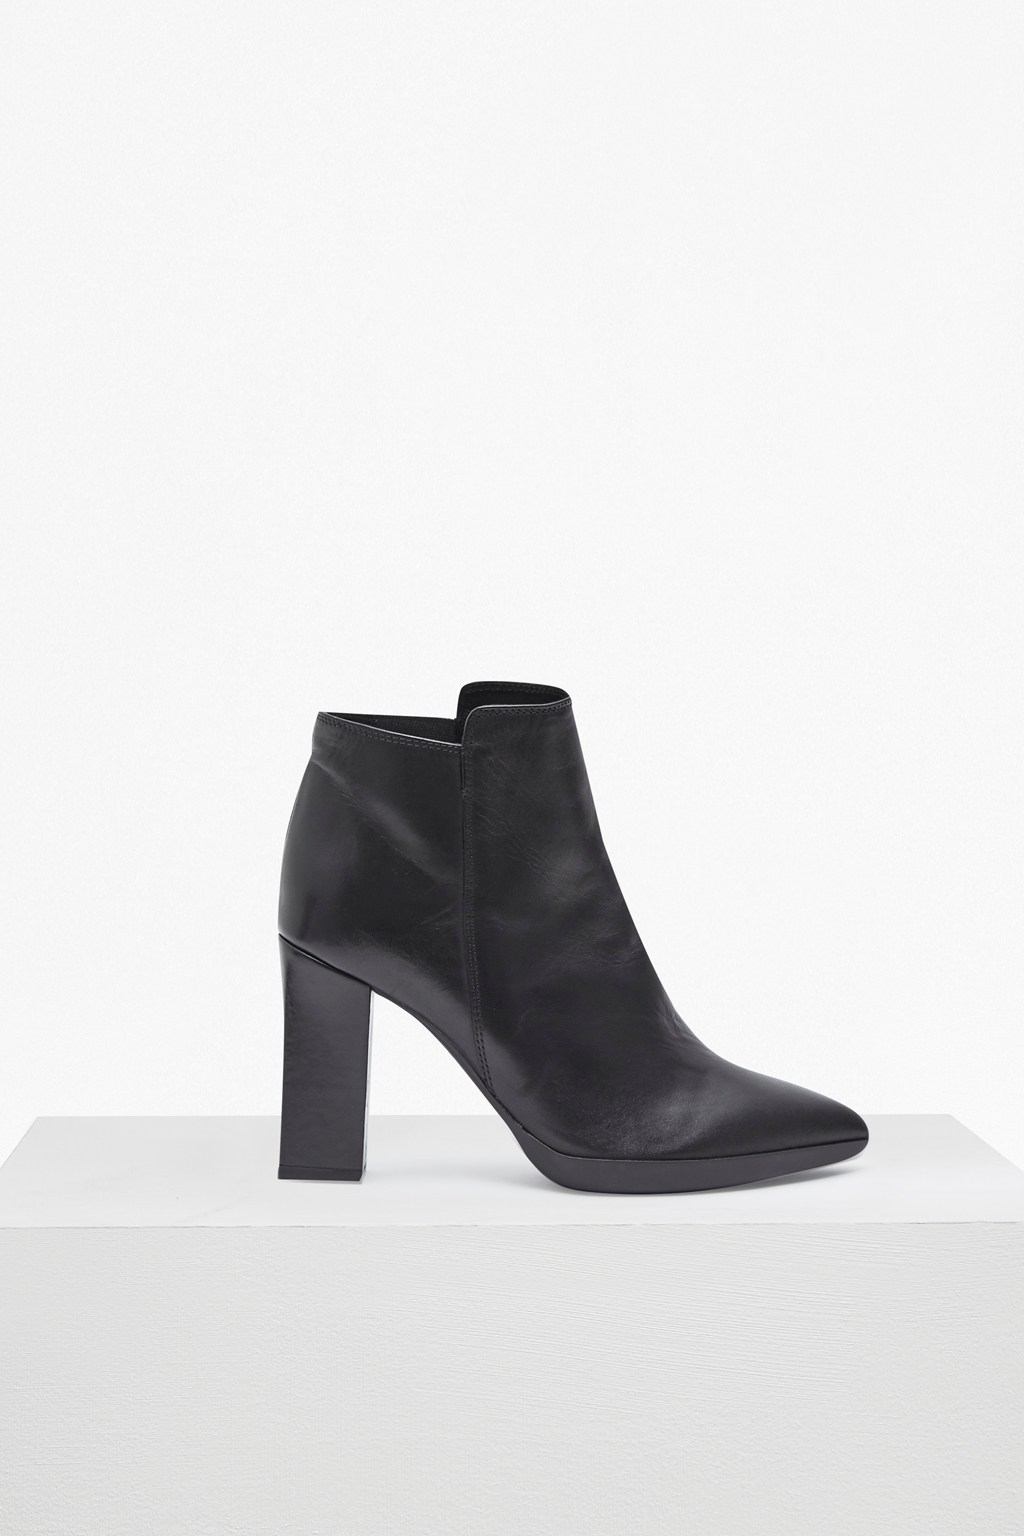 Reina High Heel Ankle Boots. loading images.